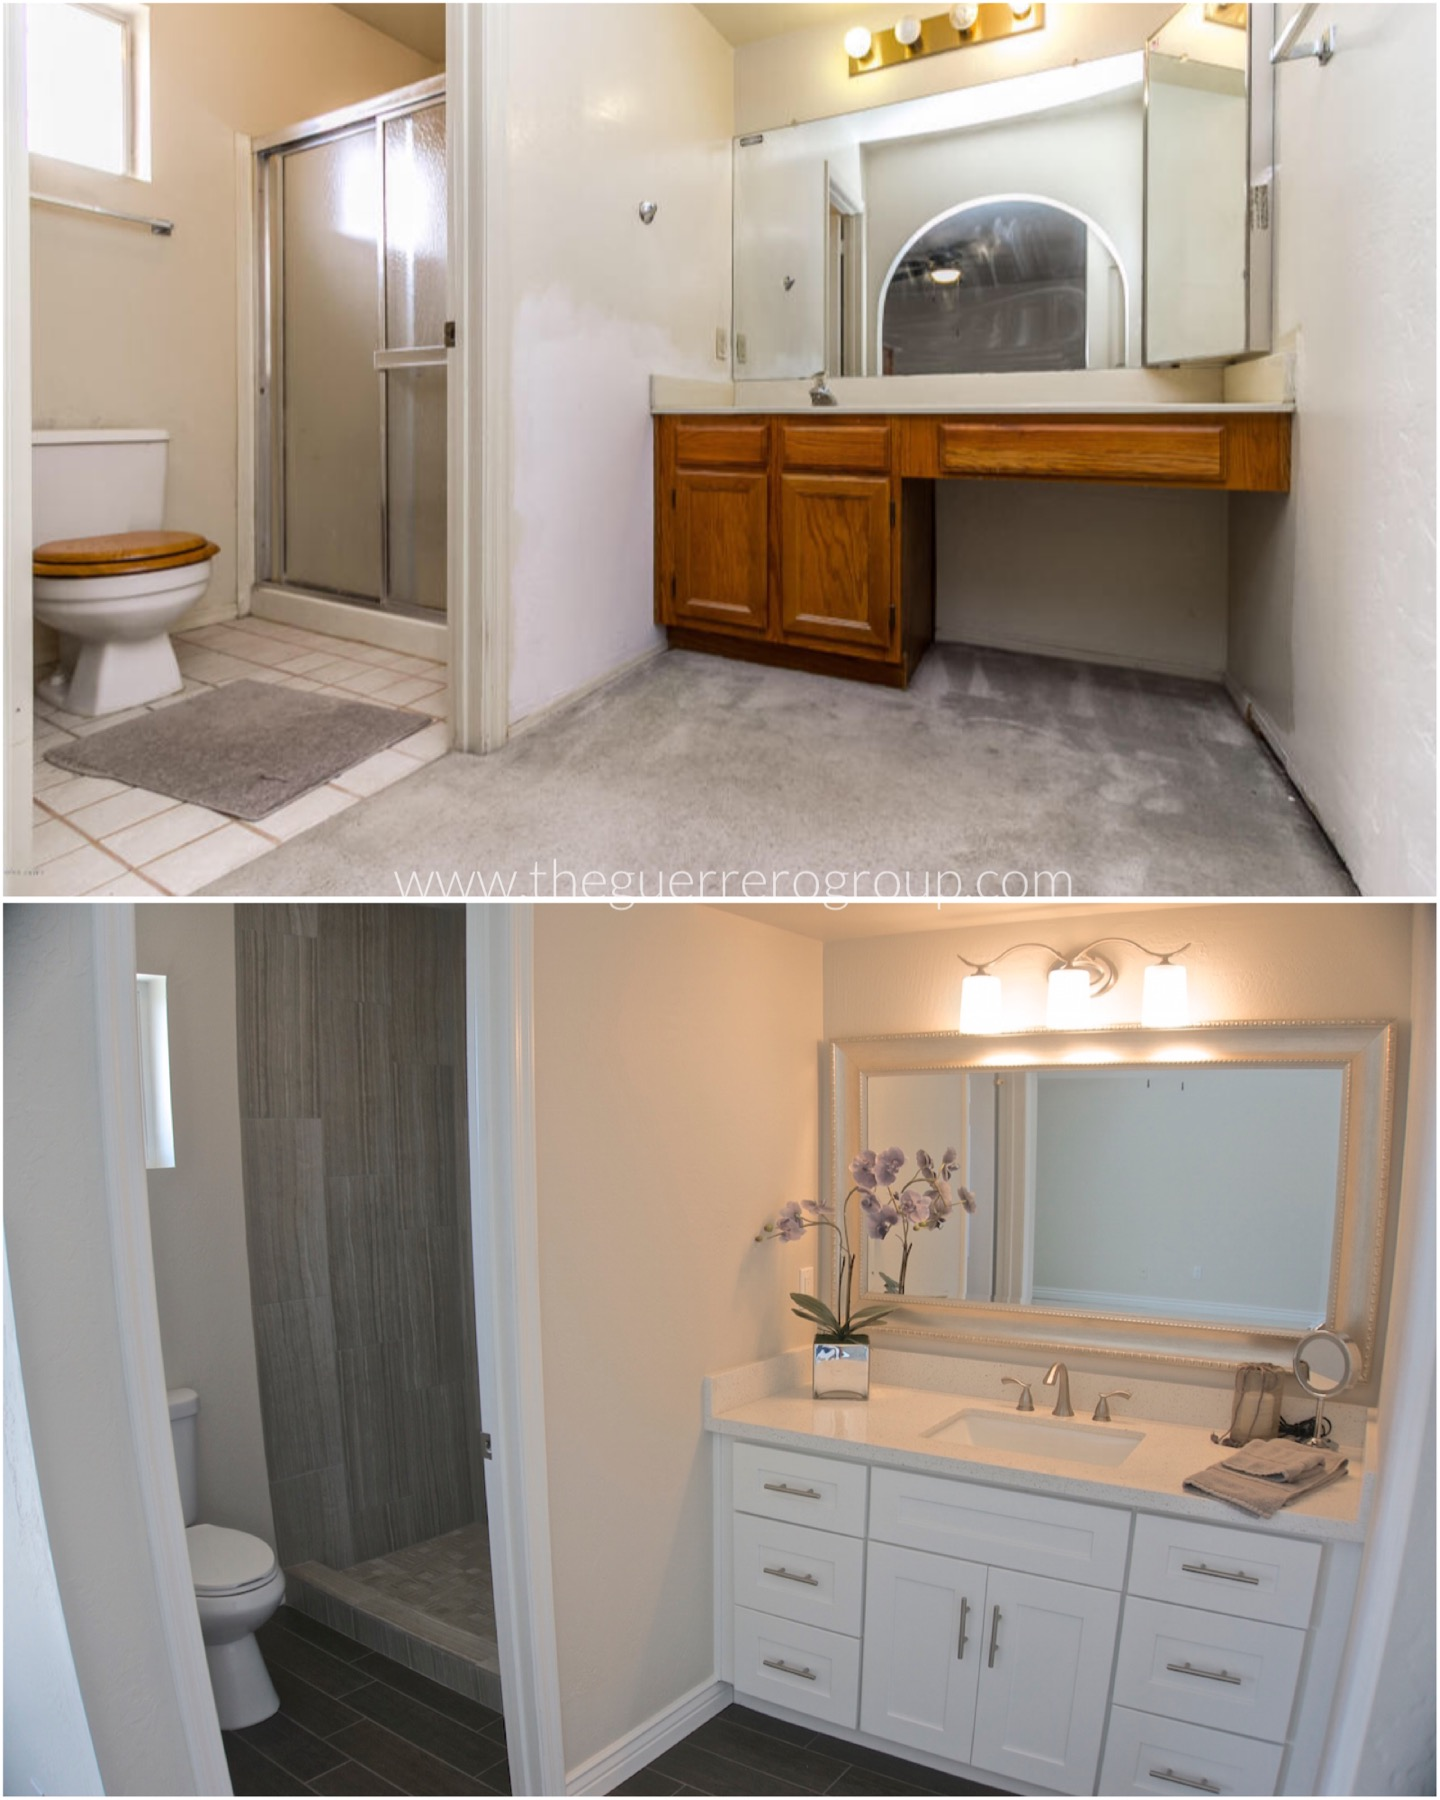 The Guerrero Group Bathroom Renovation Design at latest Chandler Home Project 2401 N Palomino Ct 85224